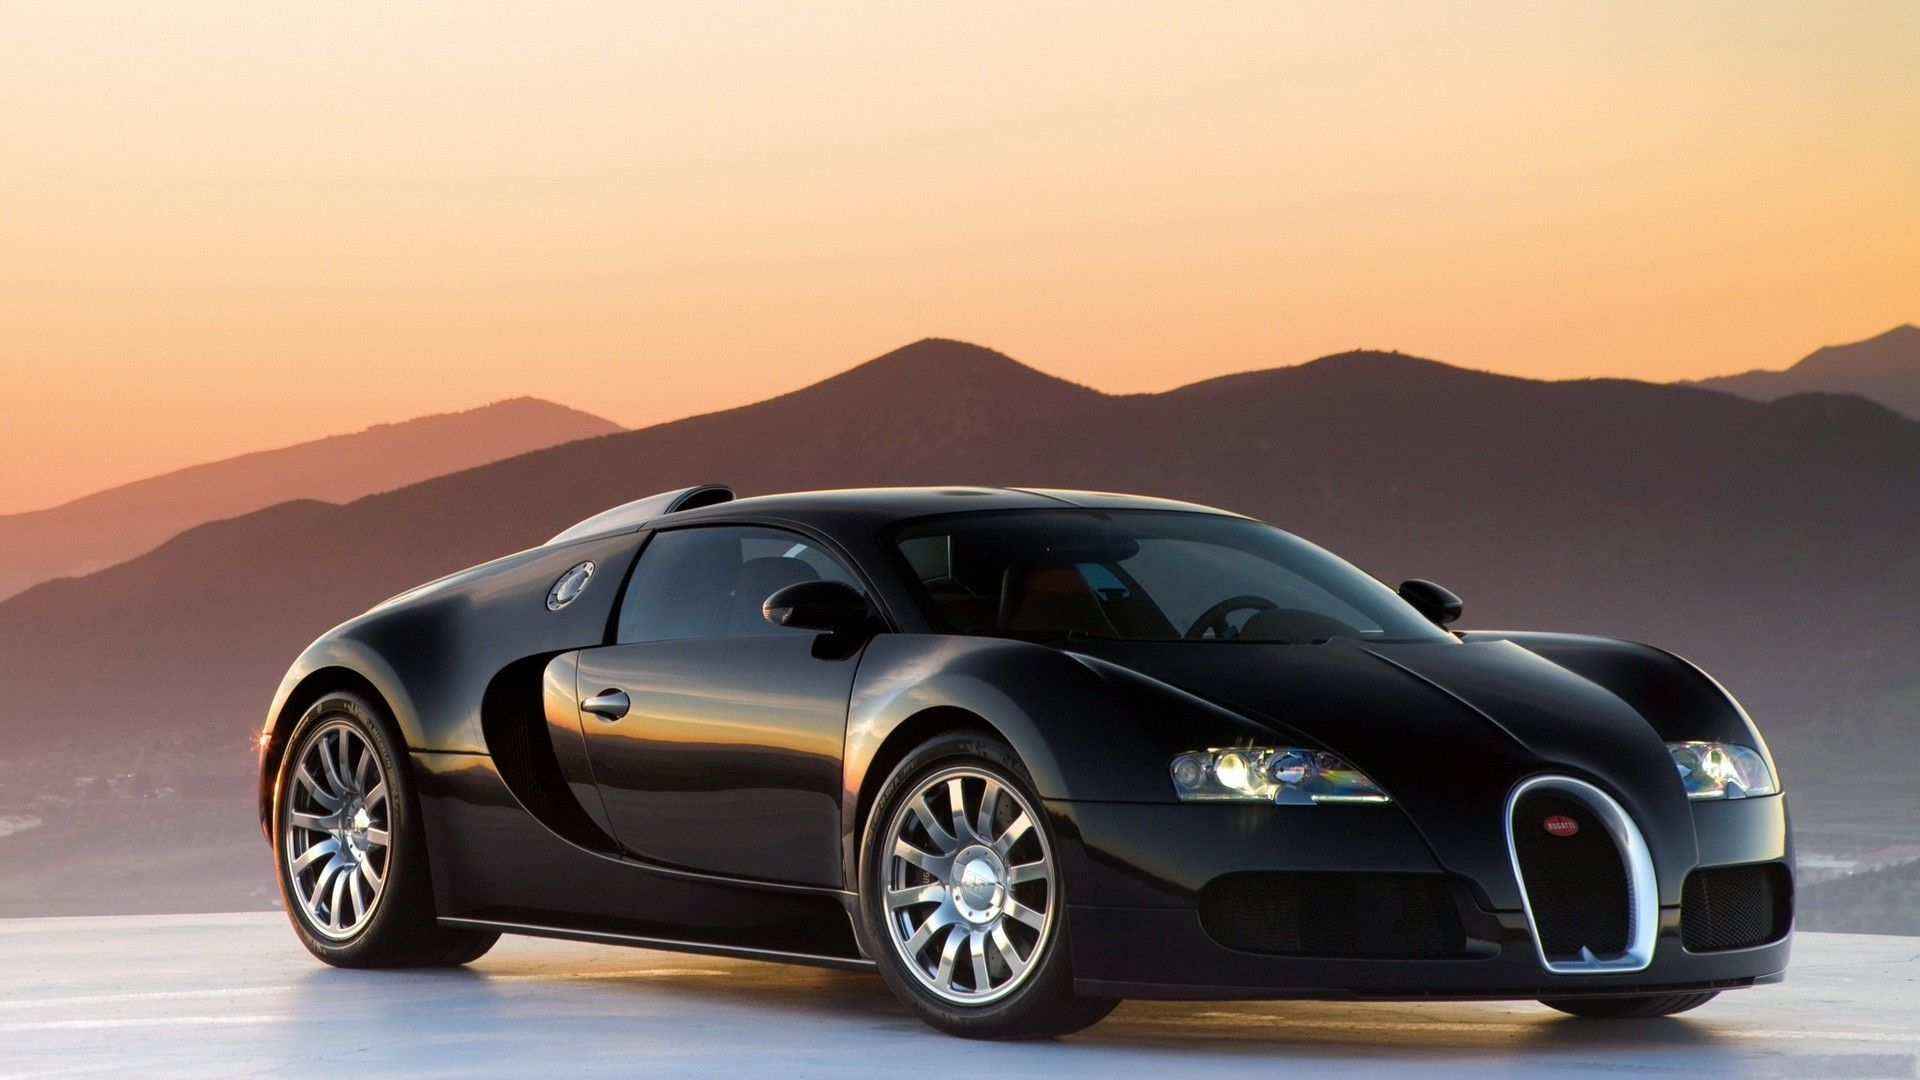 2013 Bugatti Veyron HD Desktop Wallpaper Is Hd Wallpaper